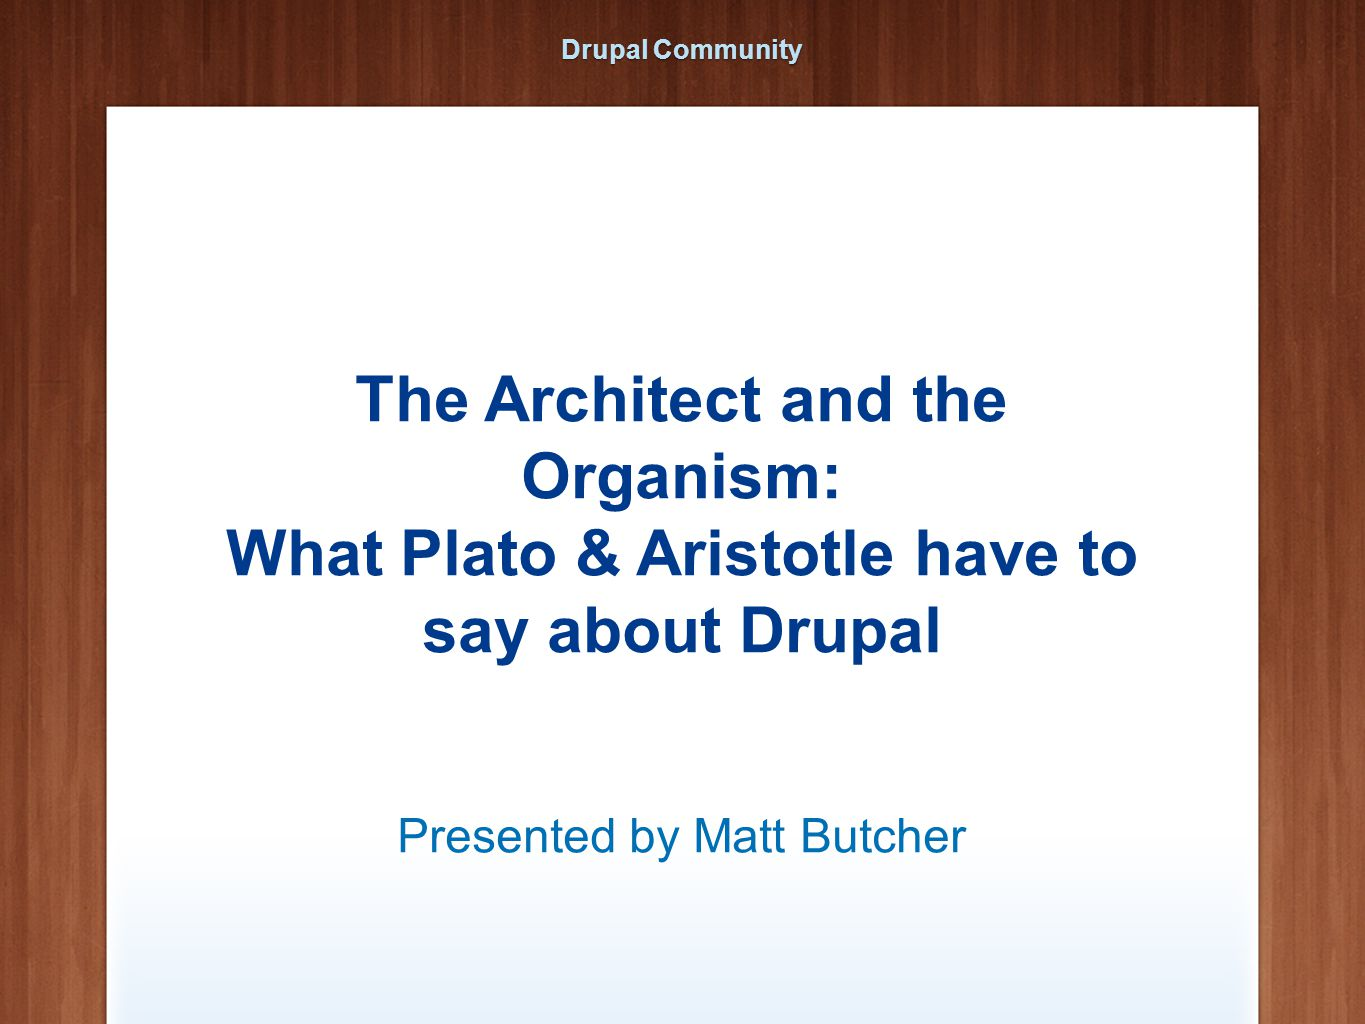 And Drupal?